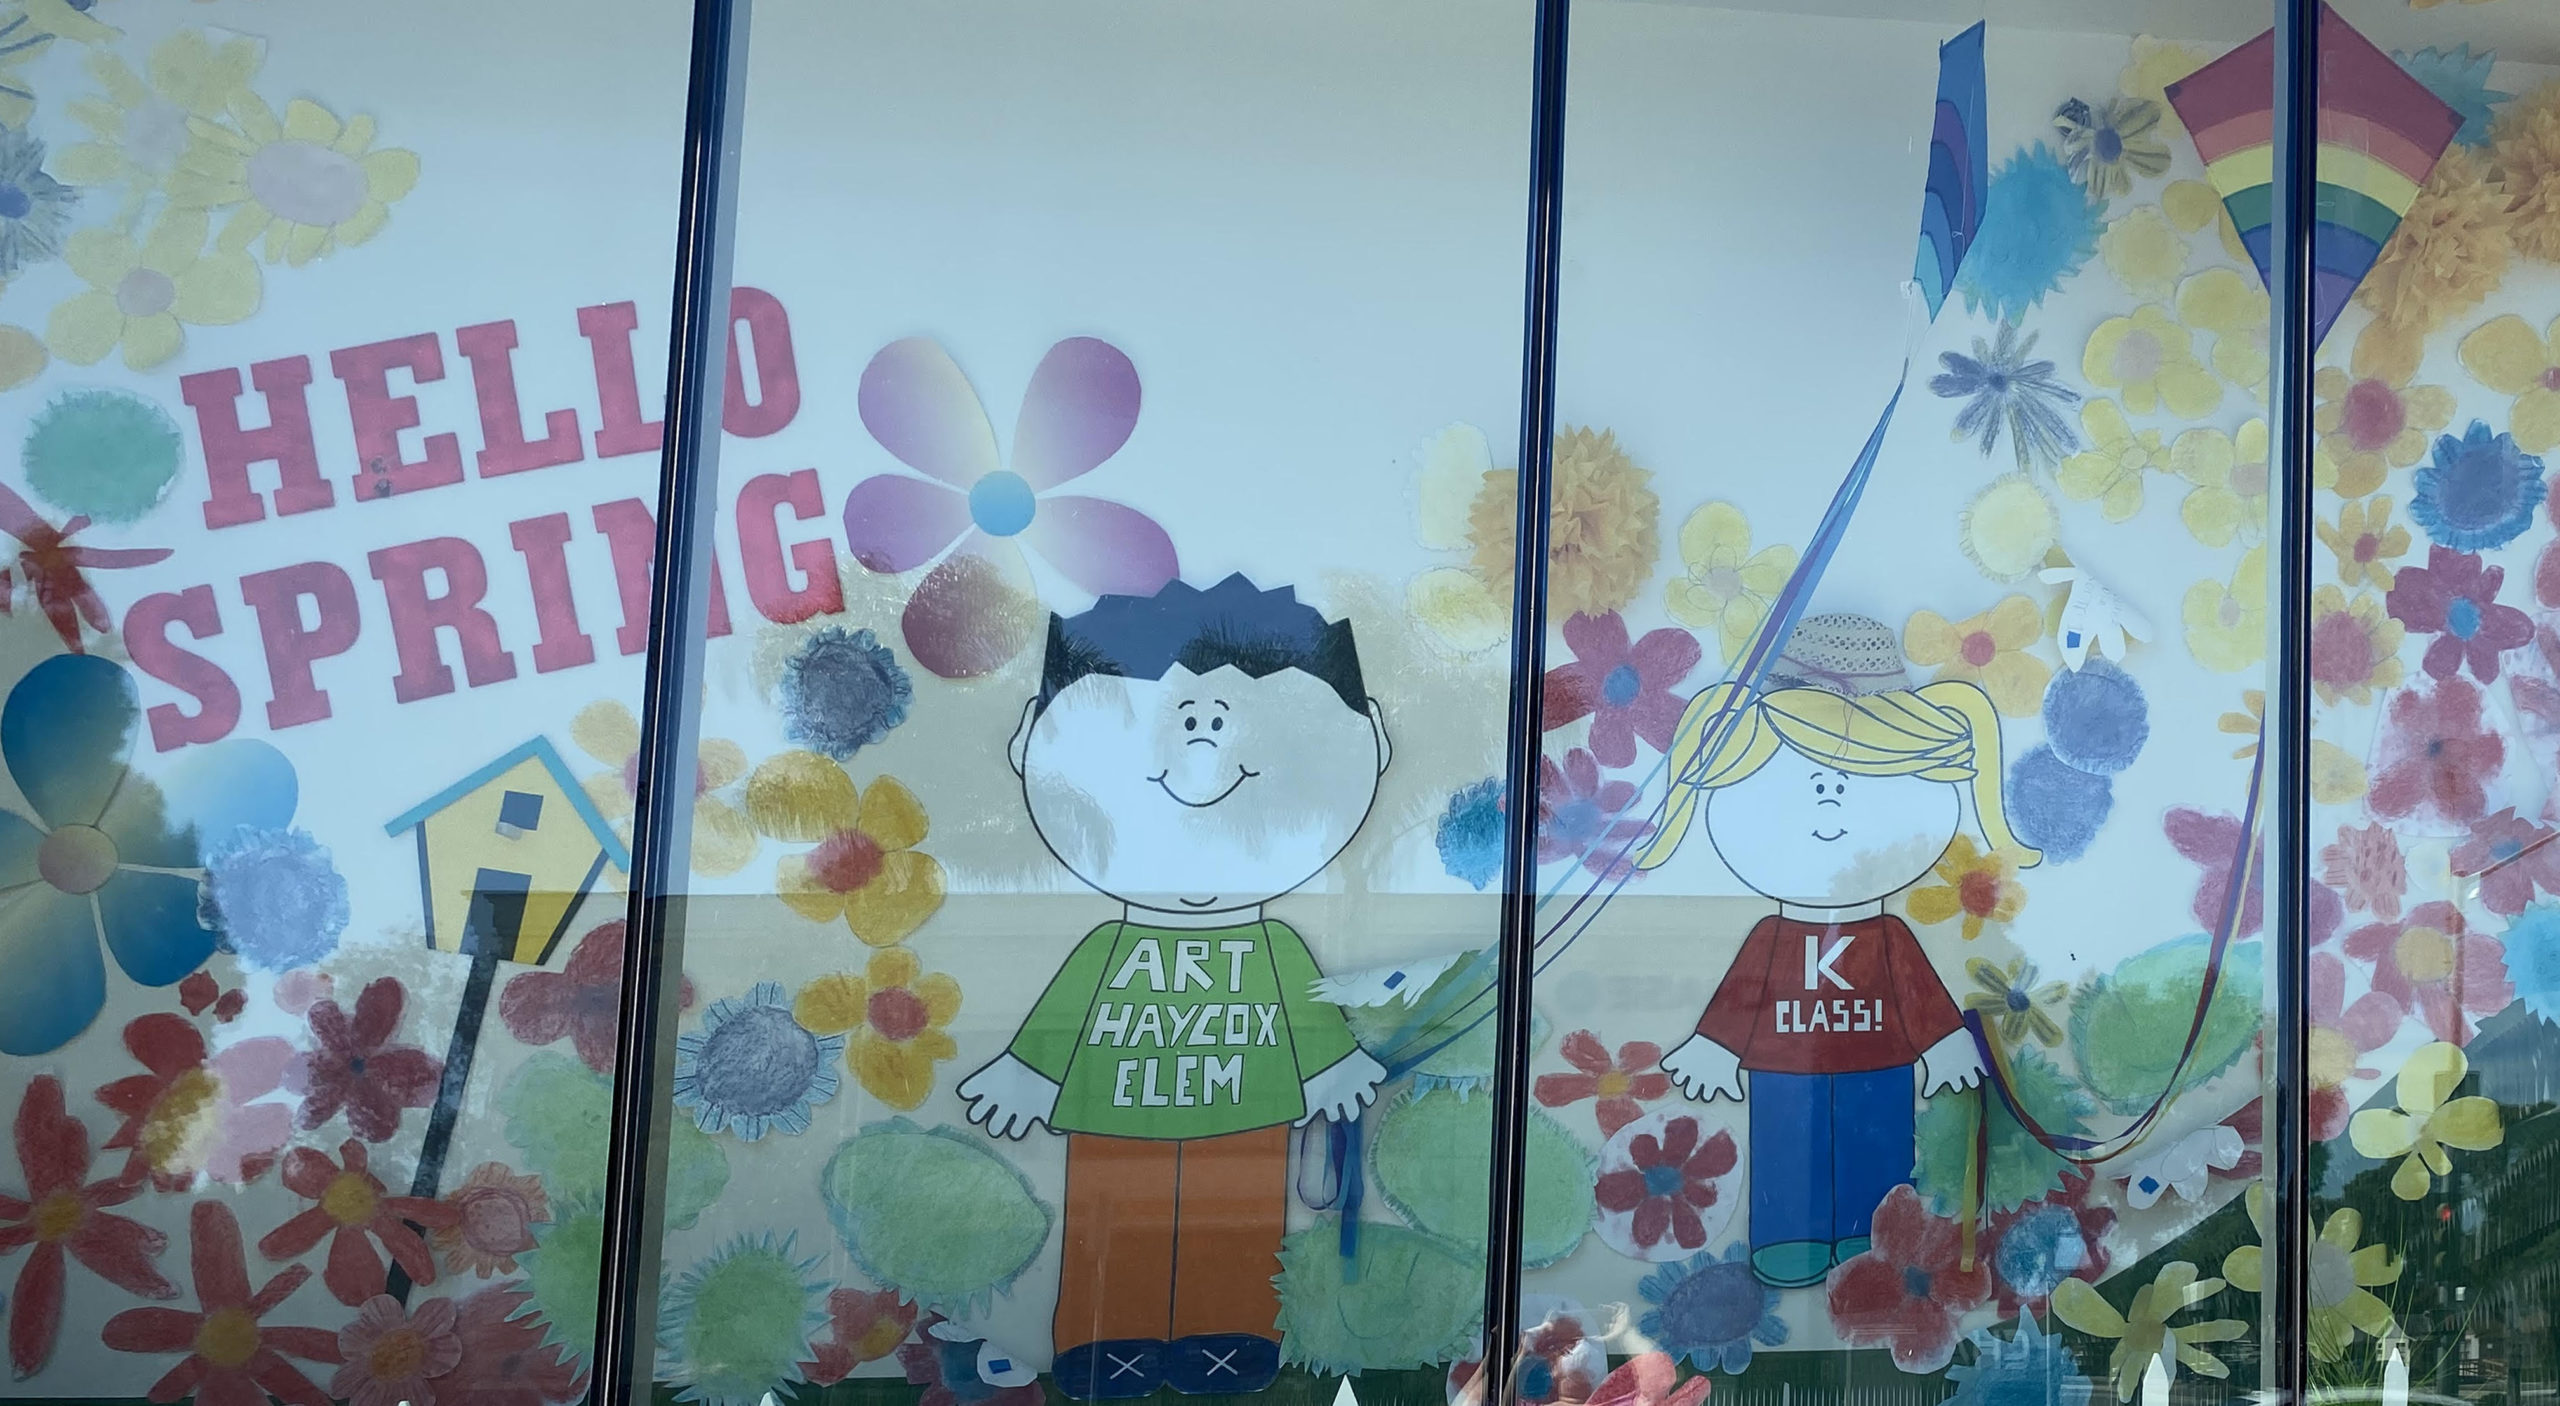 A public art display of work made by elementary school students hangs in the window of a commercial property in Ventura.